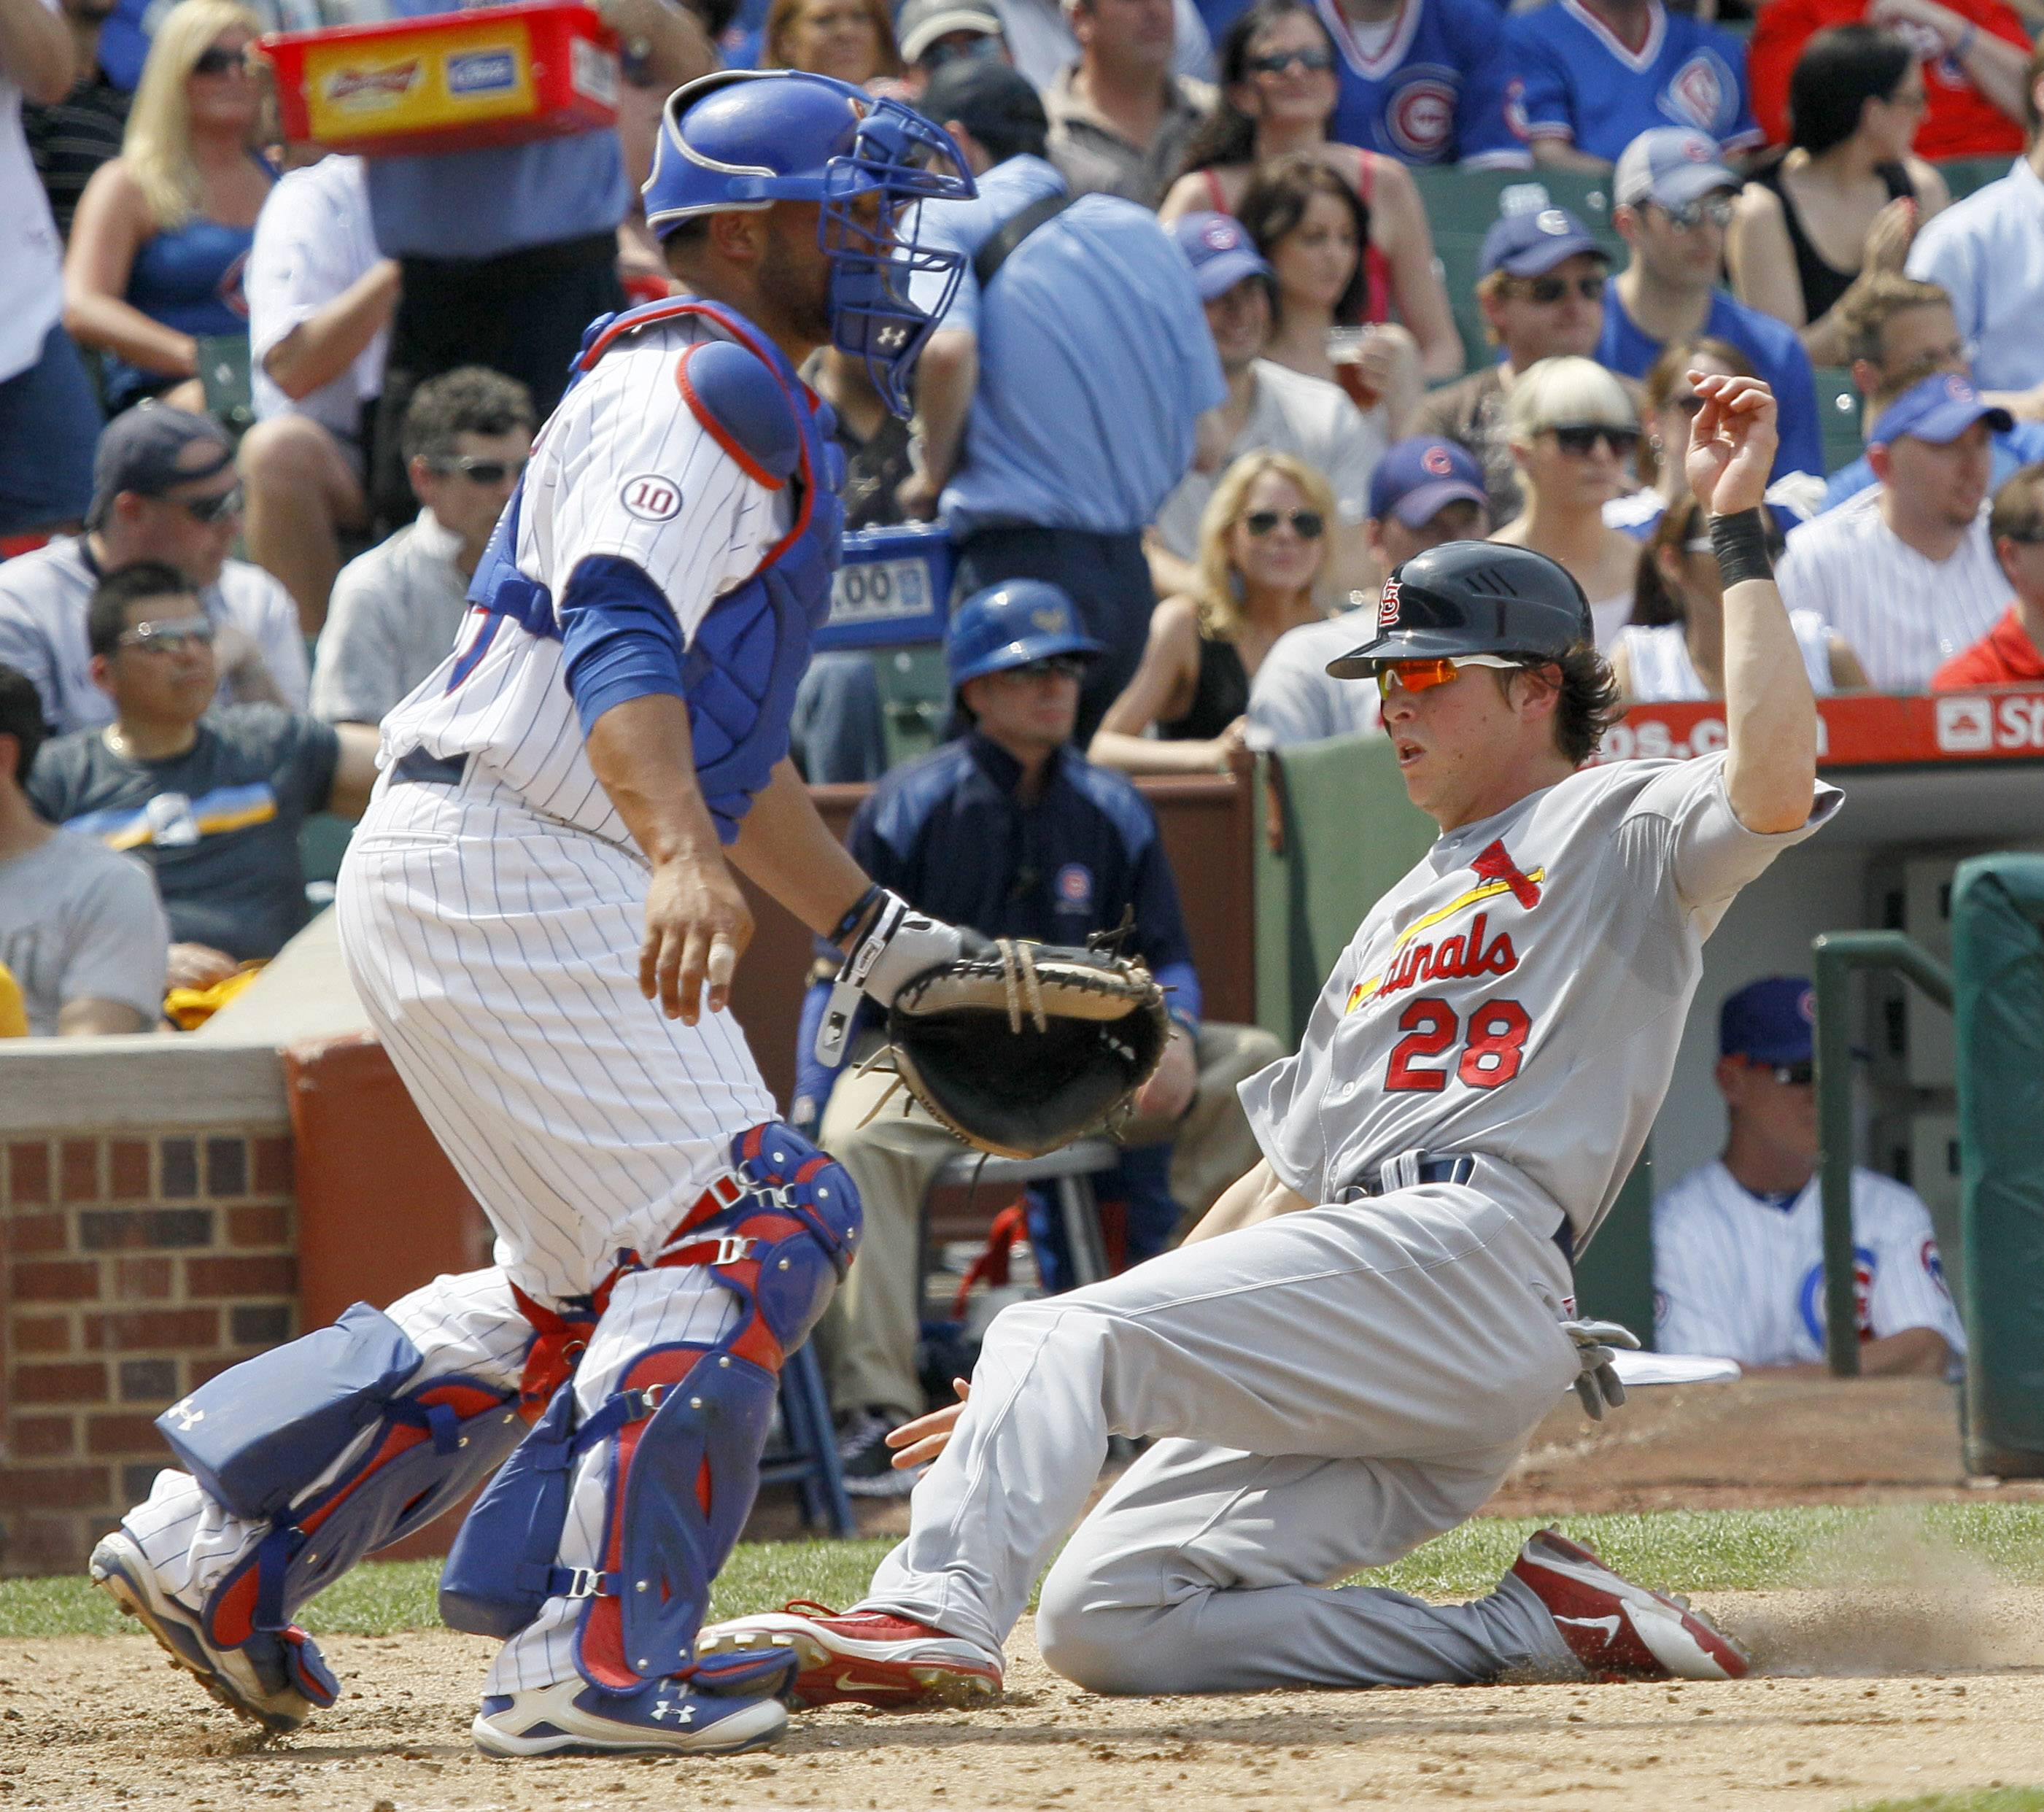 Cubs can't solve Garcia in loss